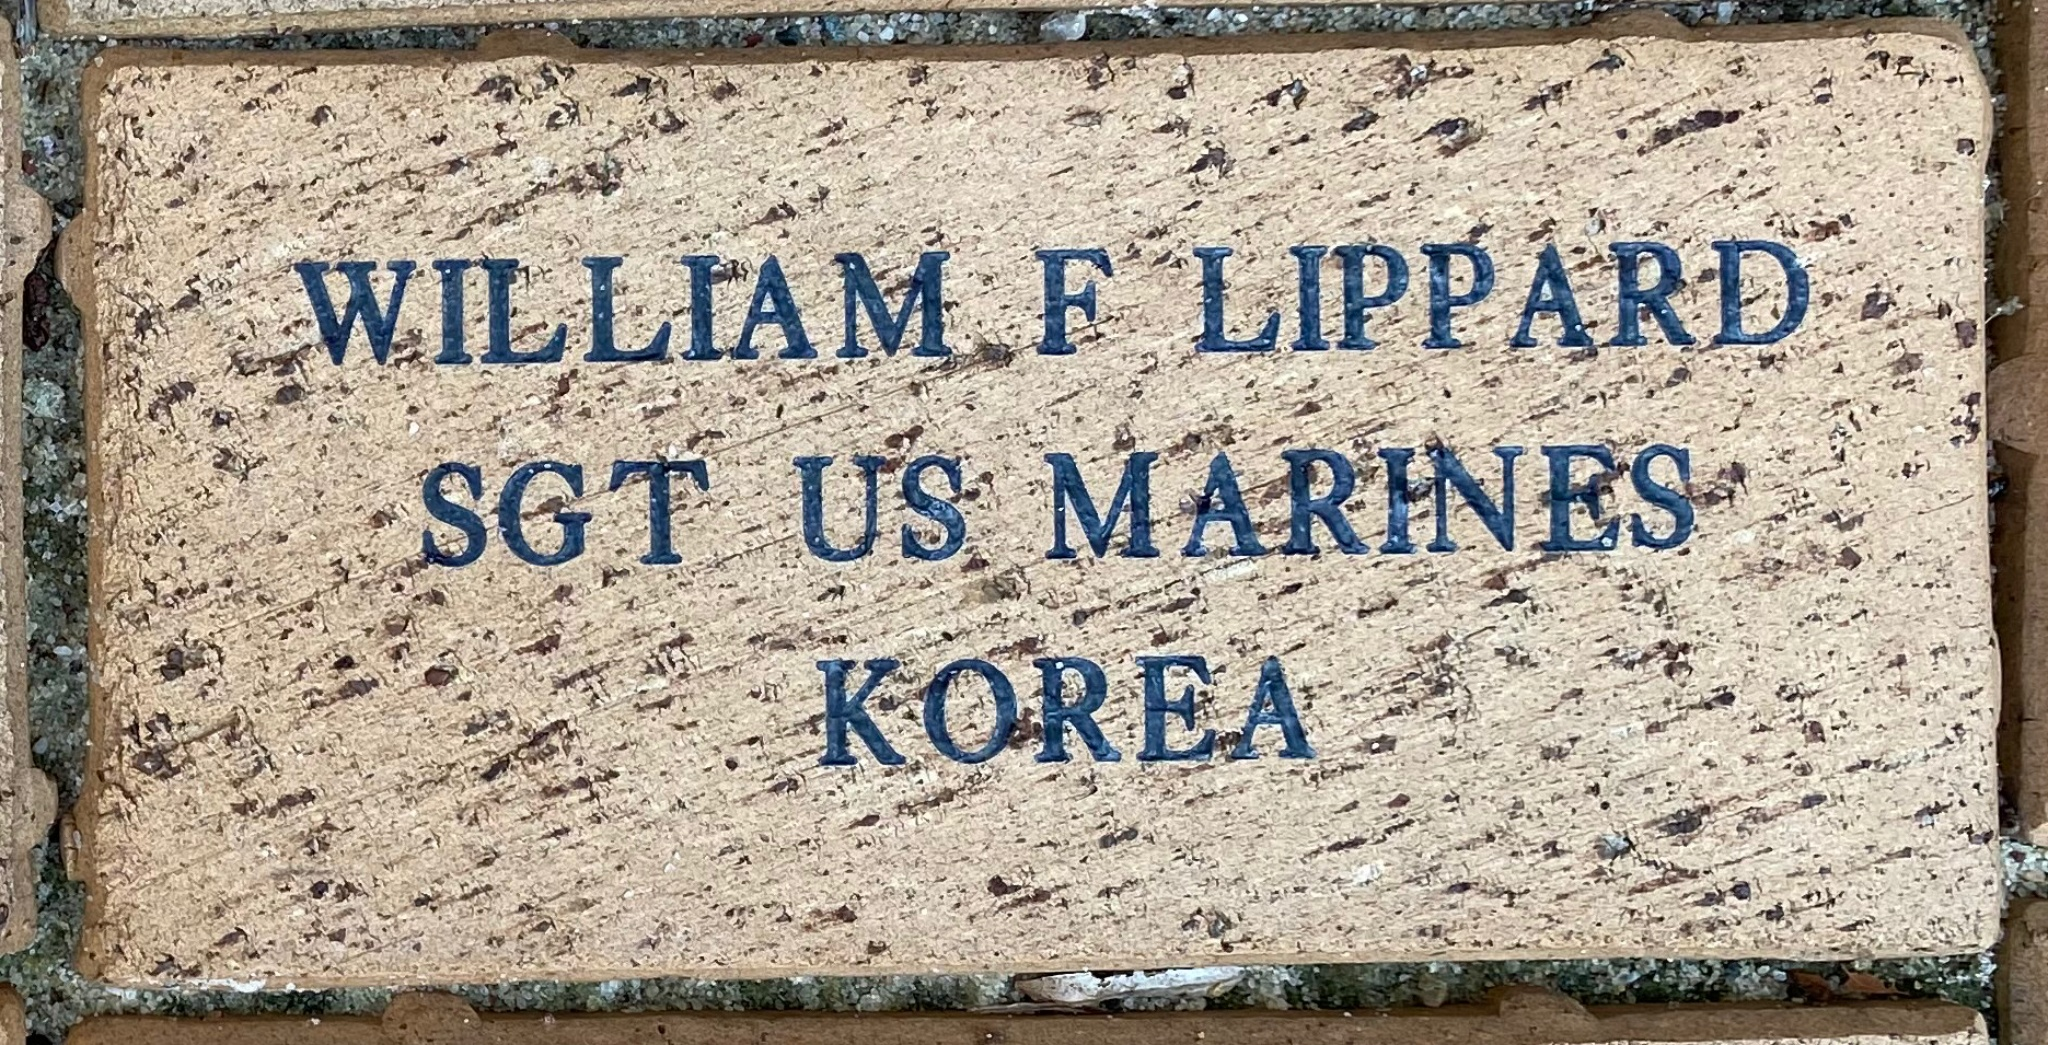 WILLIAM F LIPPARD SGT US MARINES KOREA